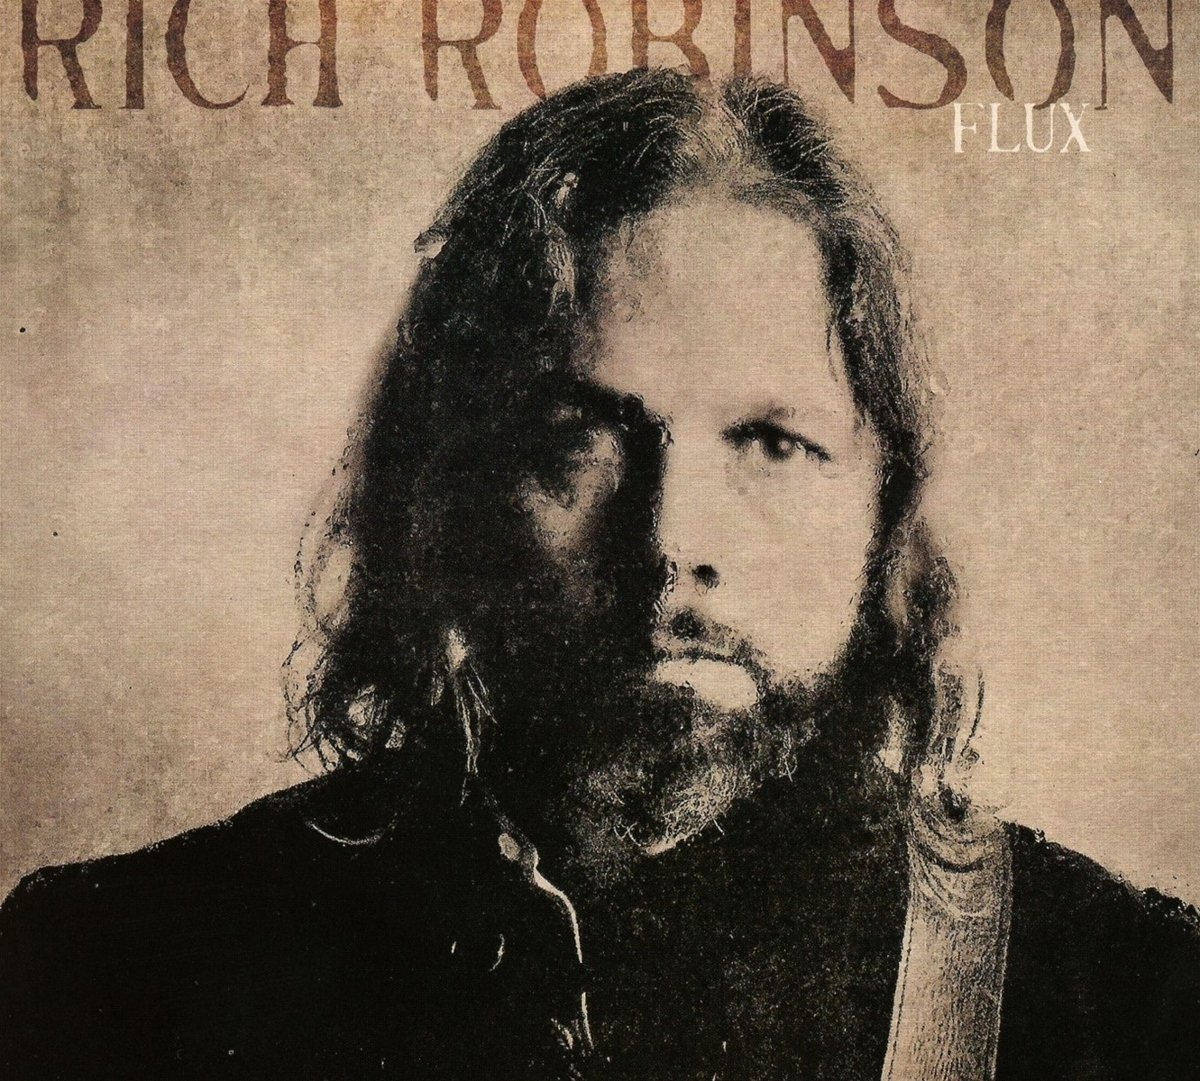 RICH ROBINSON – Which way your windblows